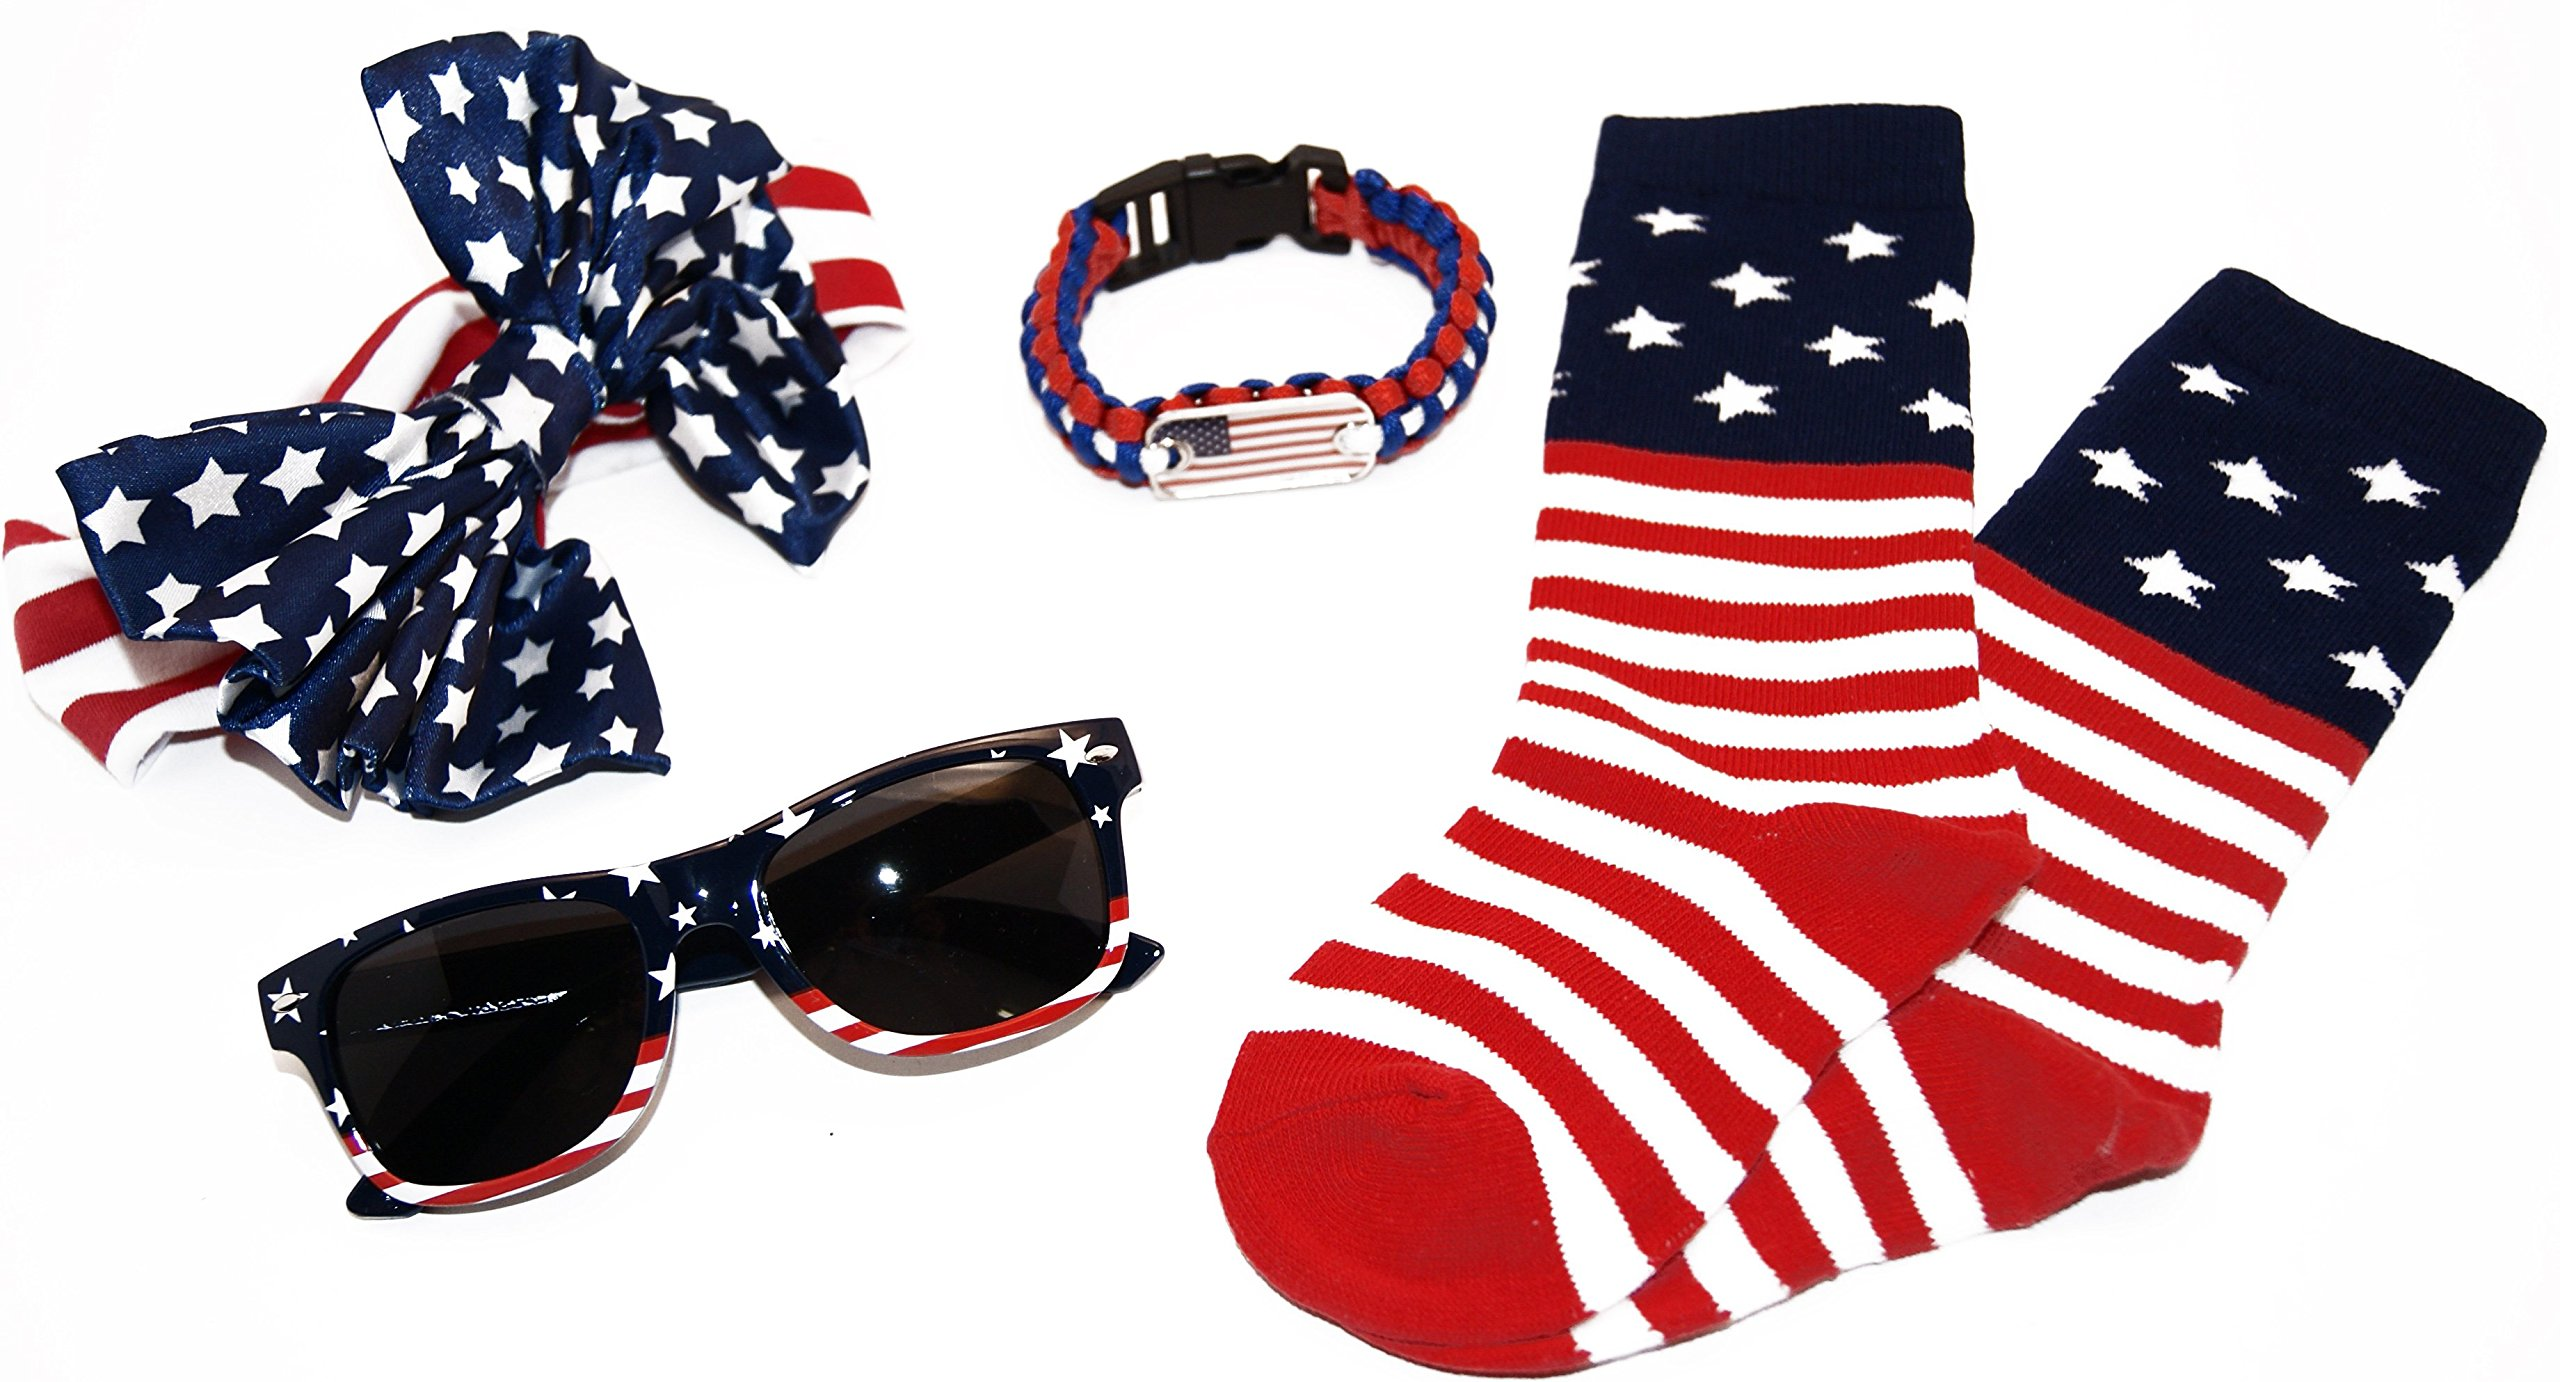 Little Miss USA II Accessory Kit for Girls 2 to 6 Socks/Sunglasses/Large Bow Band